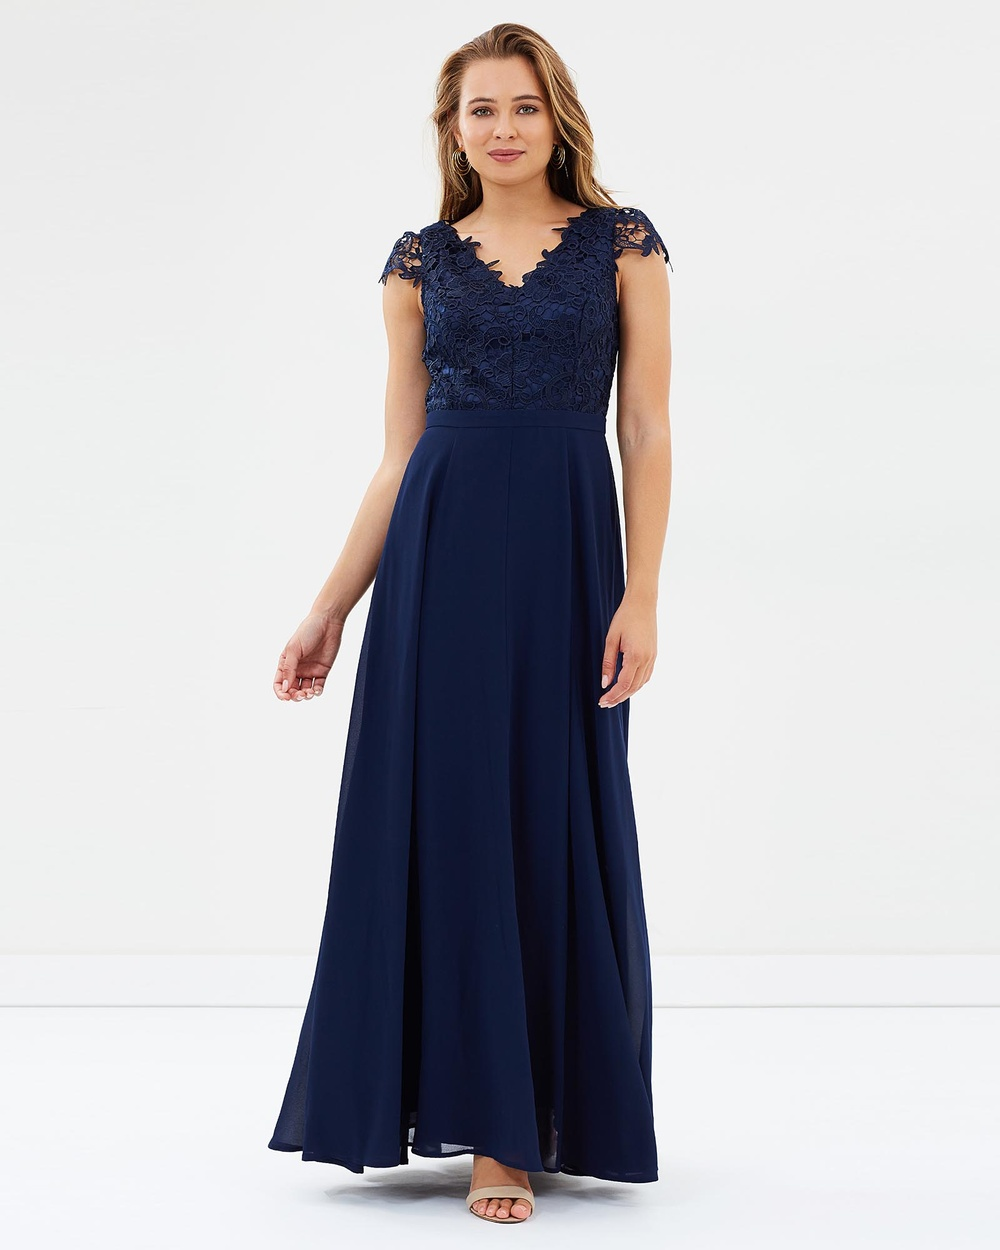 Review Endless Romance Maxi Dress Bridesmaid Dresses Navy Endless Romance Maxi Dress